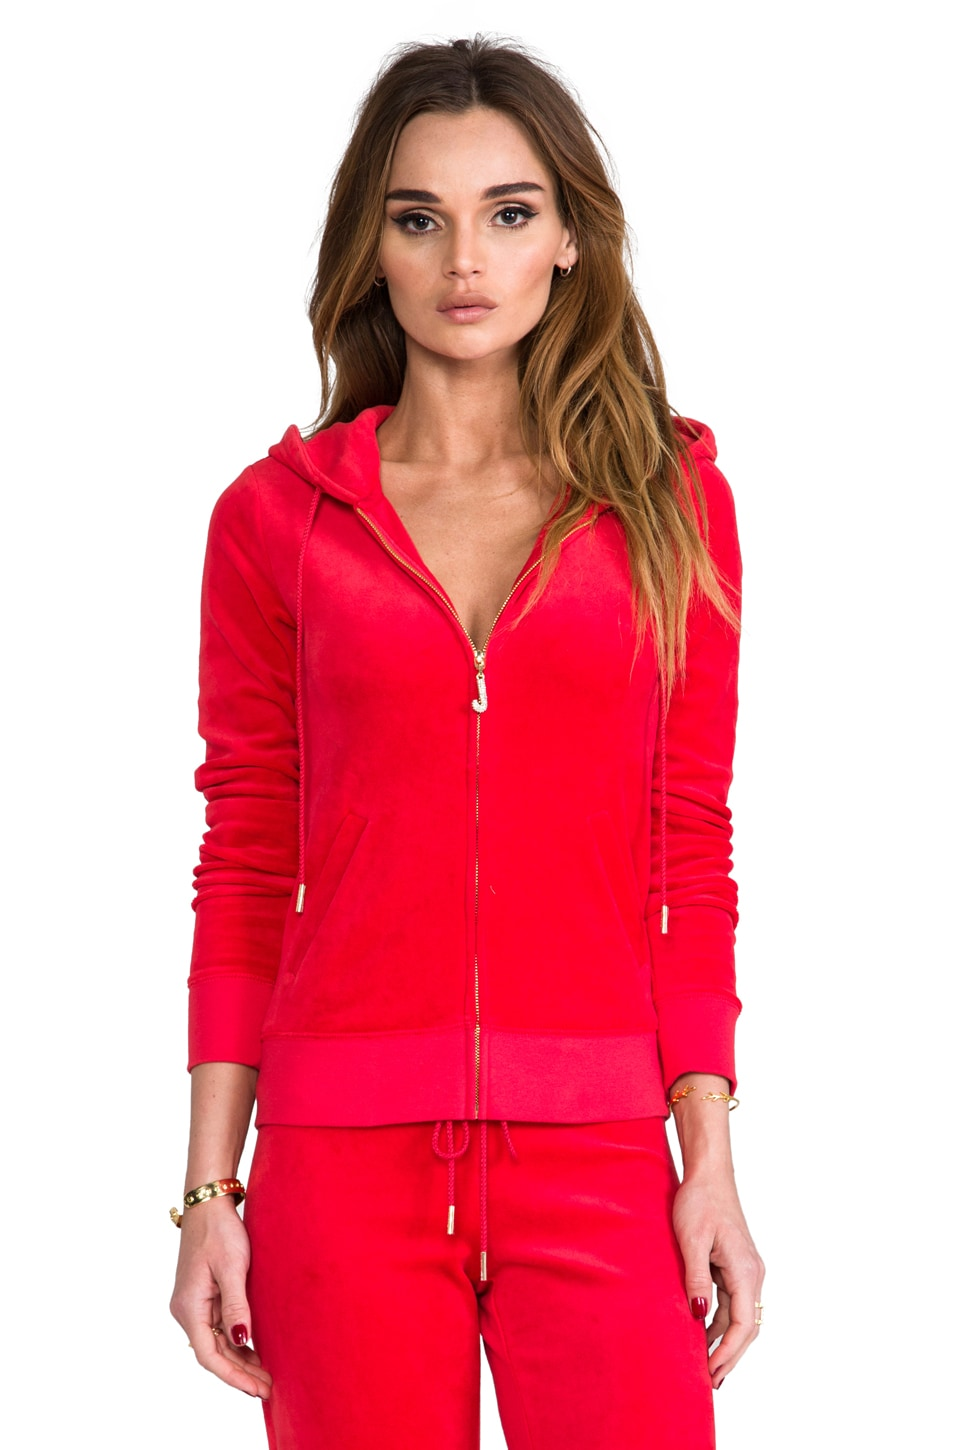 Juicy Couture J Bling Hoodie in Lipstick Red